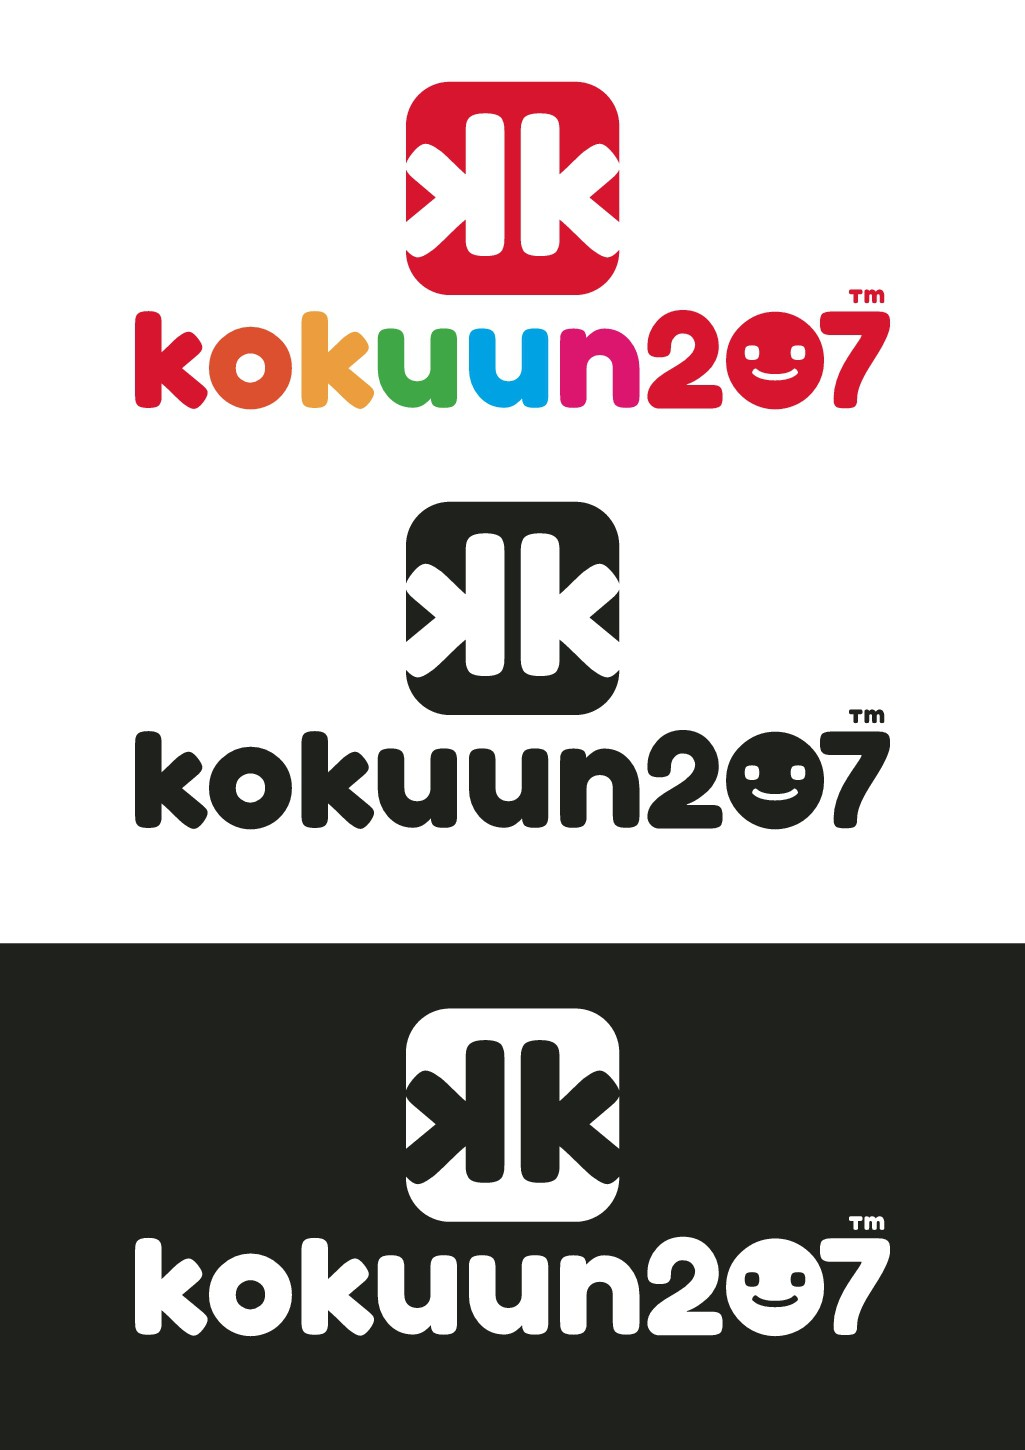 Design of a great logo for a new Shoe Brand for kids!